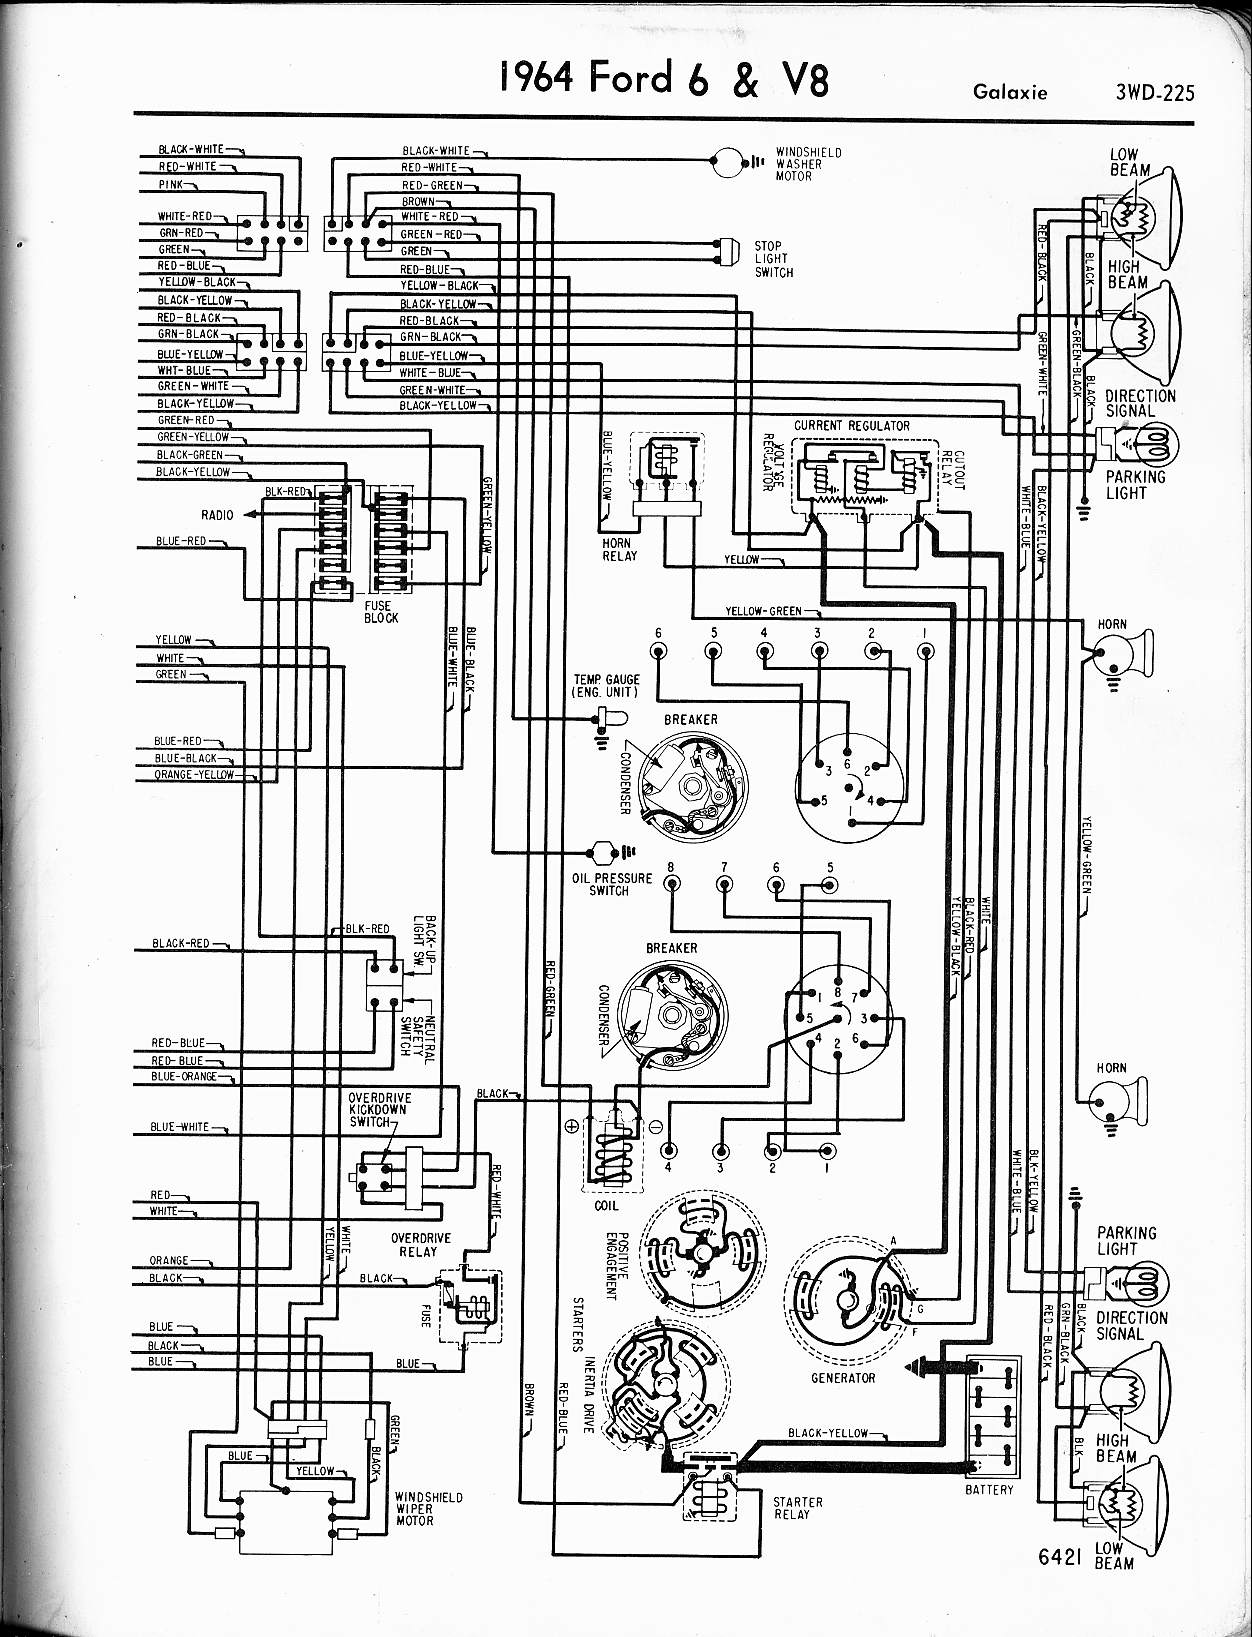 MWire5765 225 1964 wiring woes ford muscle forums ford muscle cars tech forum 1964 thunderbird wiring diagram at bayanpartner.co